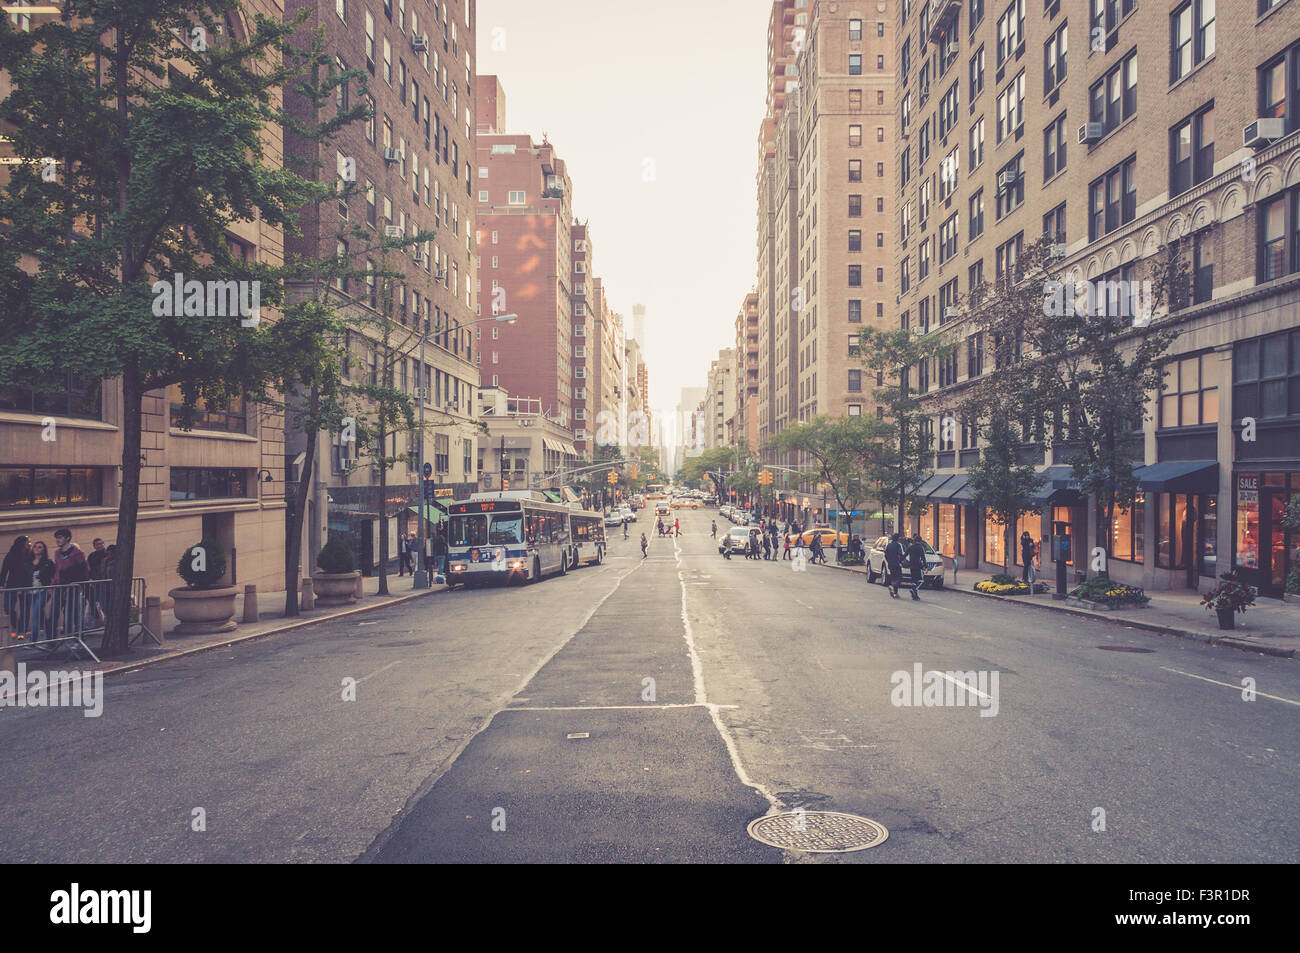 street view of Madison avenue, New York City, USA - Stock Image